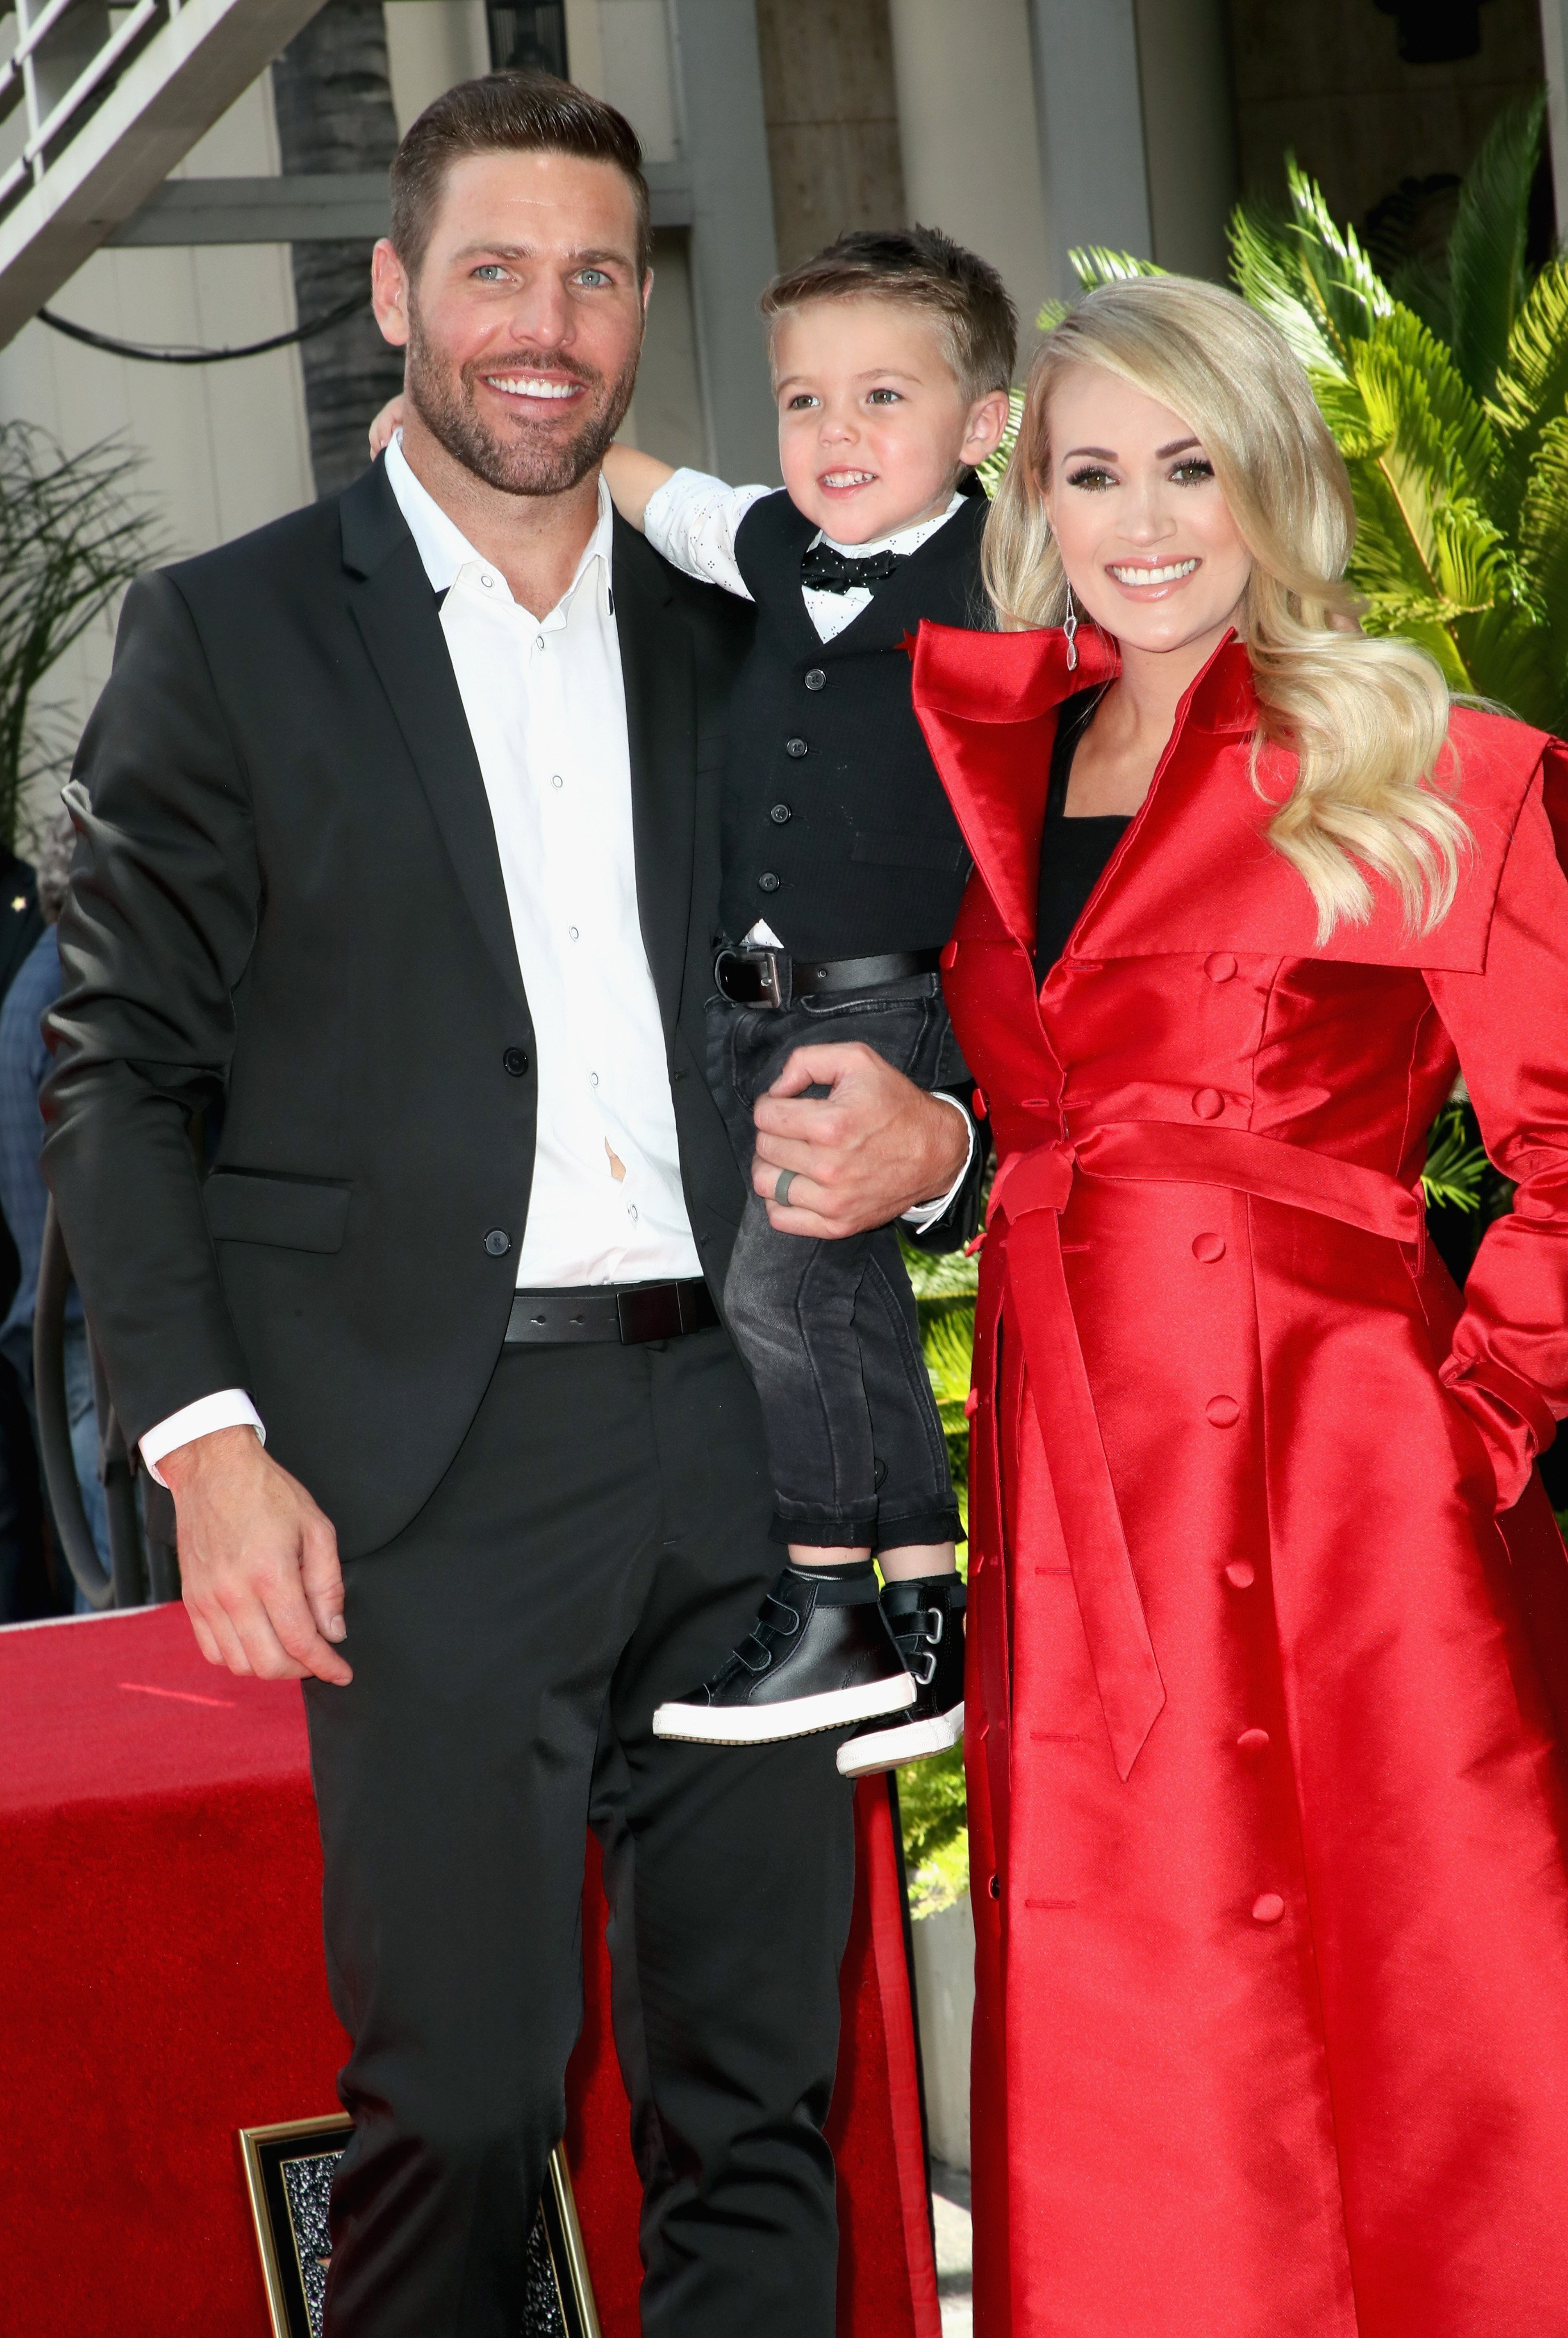 Mike Fisher, Carrie Underwood, and son Isaiah Michael Fisher at Underwood's Hollywood Walk of Fame ceremony in Los Angeles | Photo: Getty Images